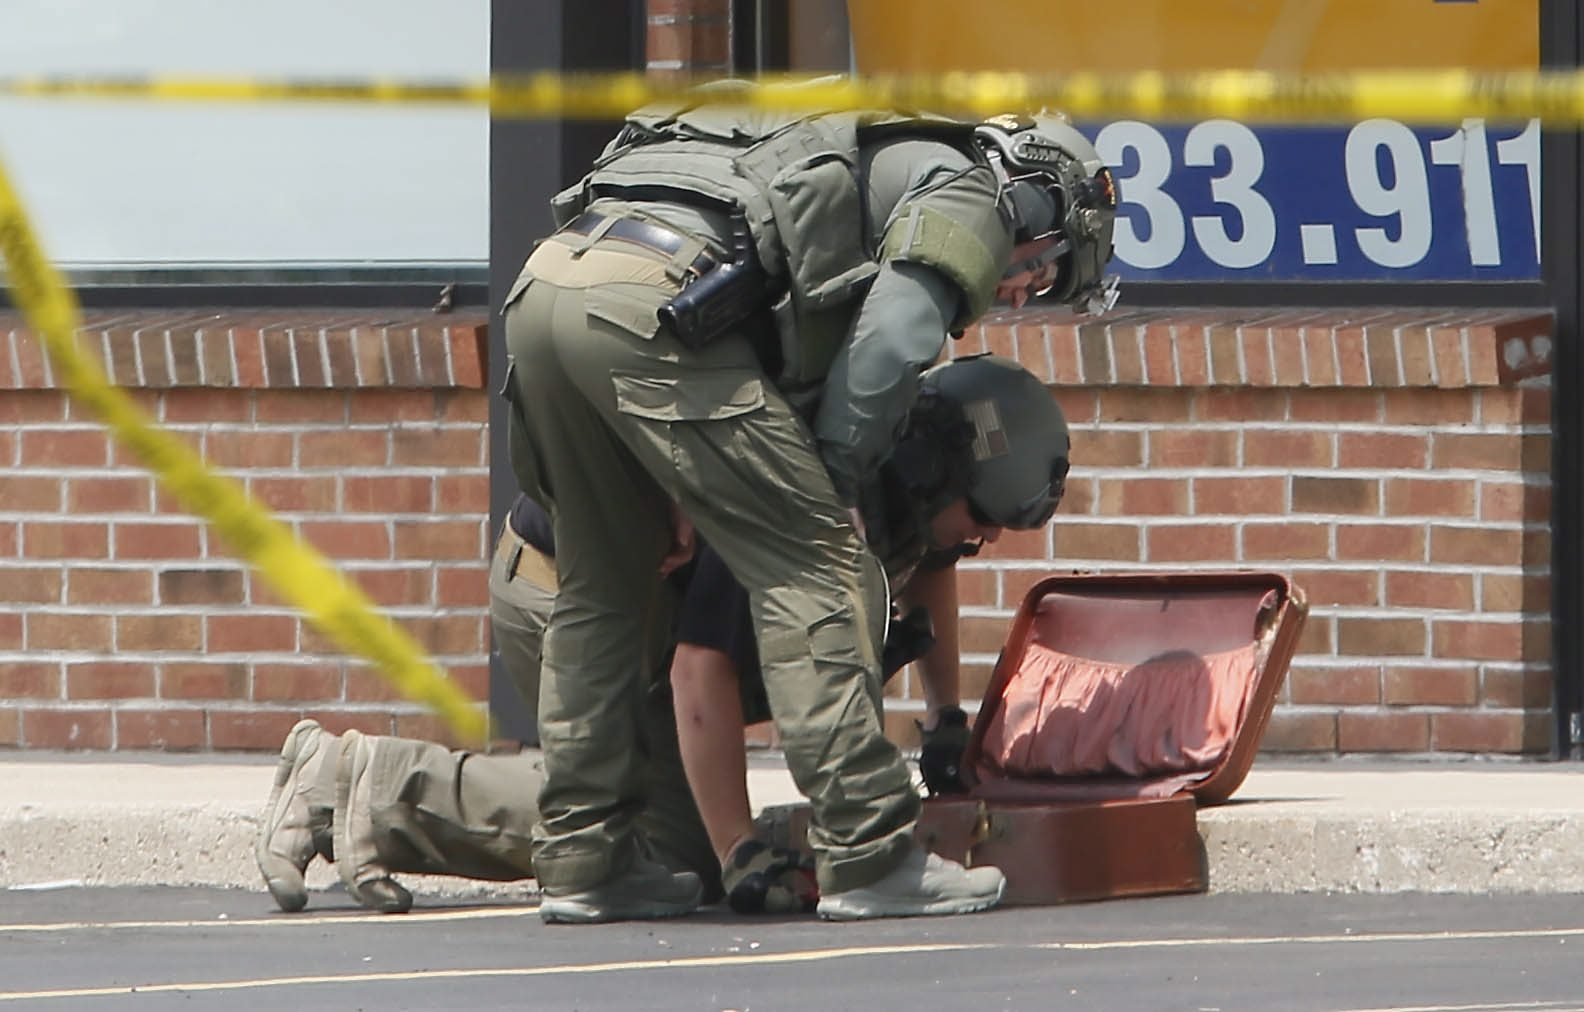 Erie County Sheriff's Bomb Squad officers inspect the suitcase that was removed from the Armed Forces Recruiting Center on Sheridan Drive after using a robot to remove it from the building Tuesday.